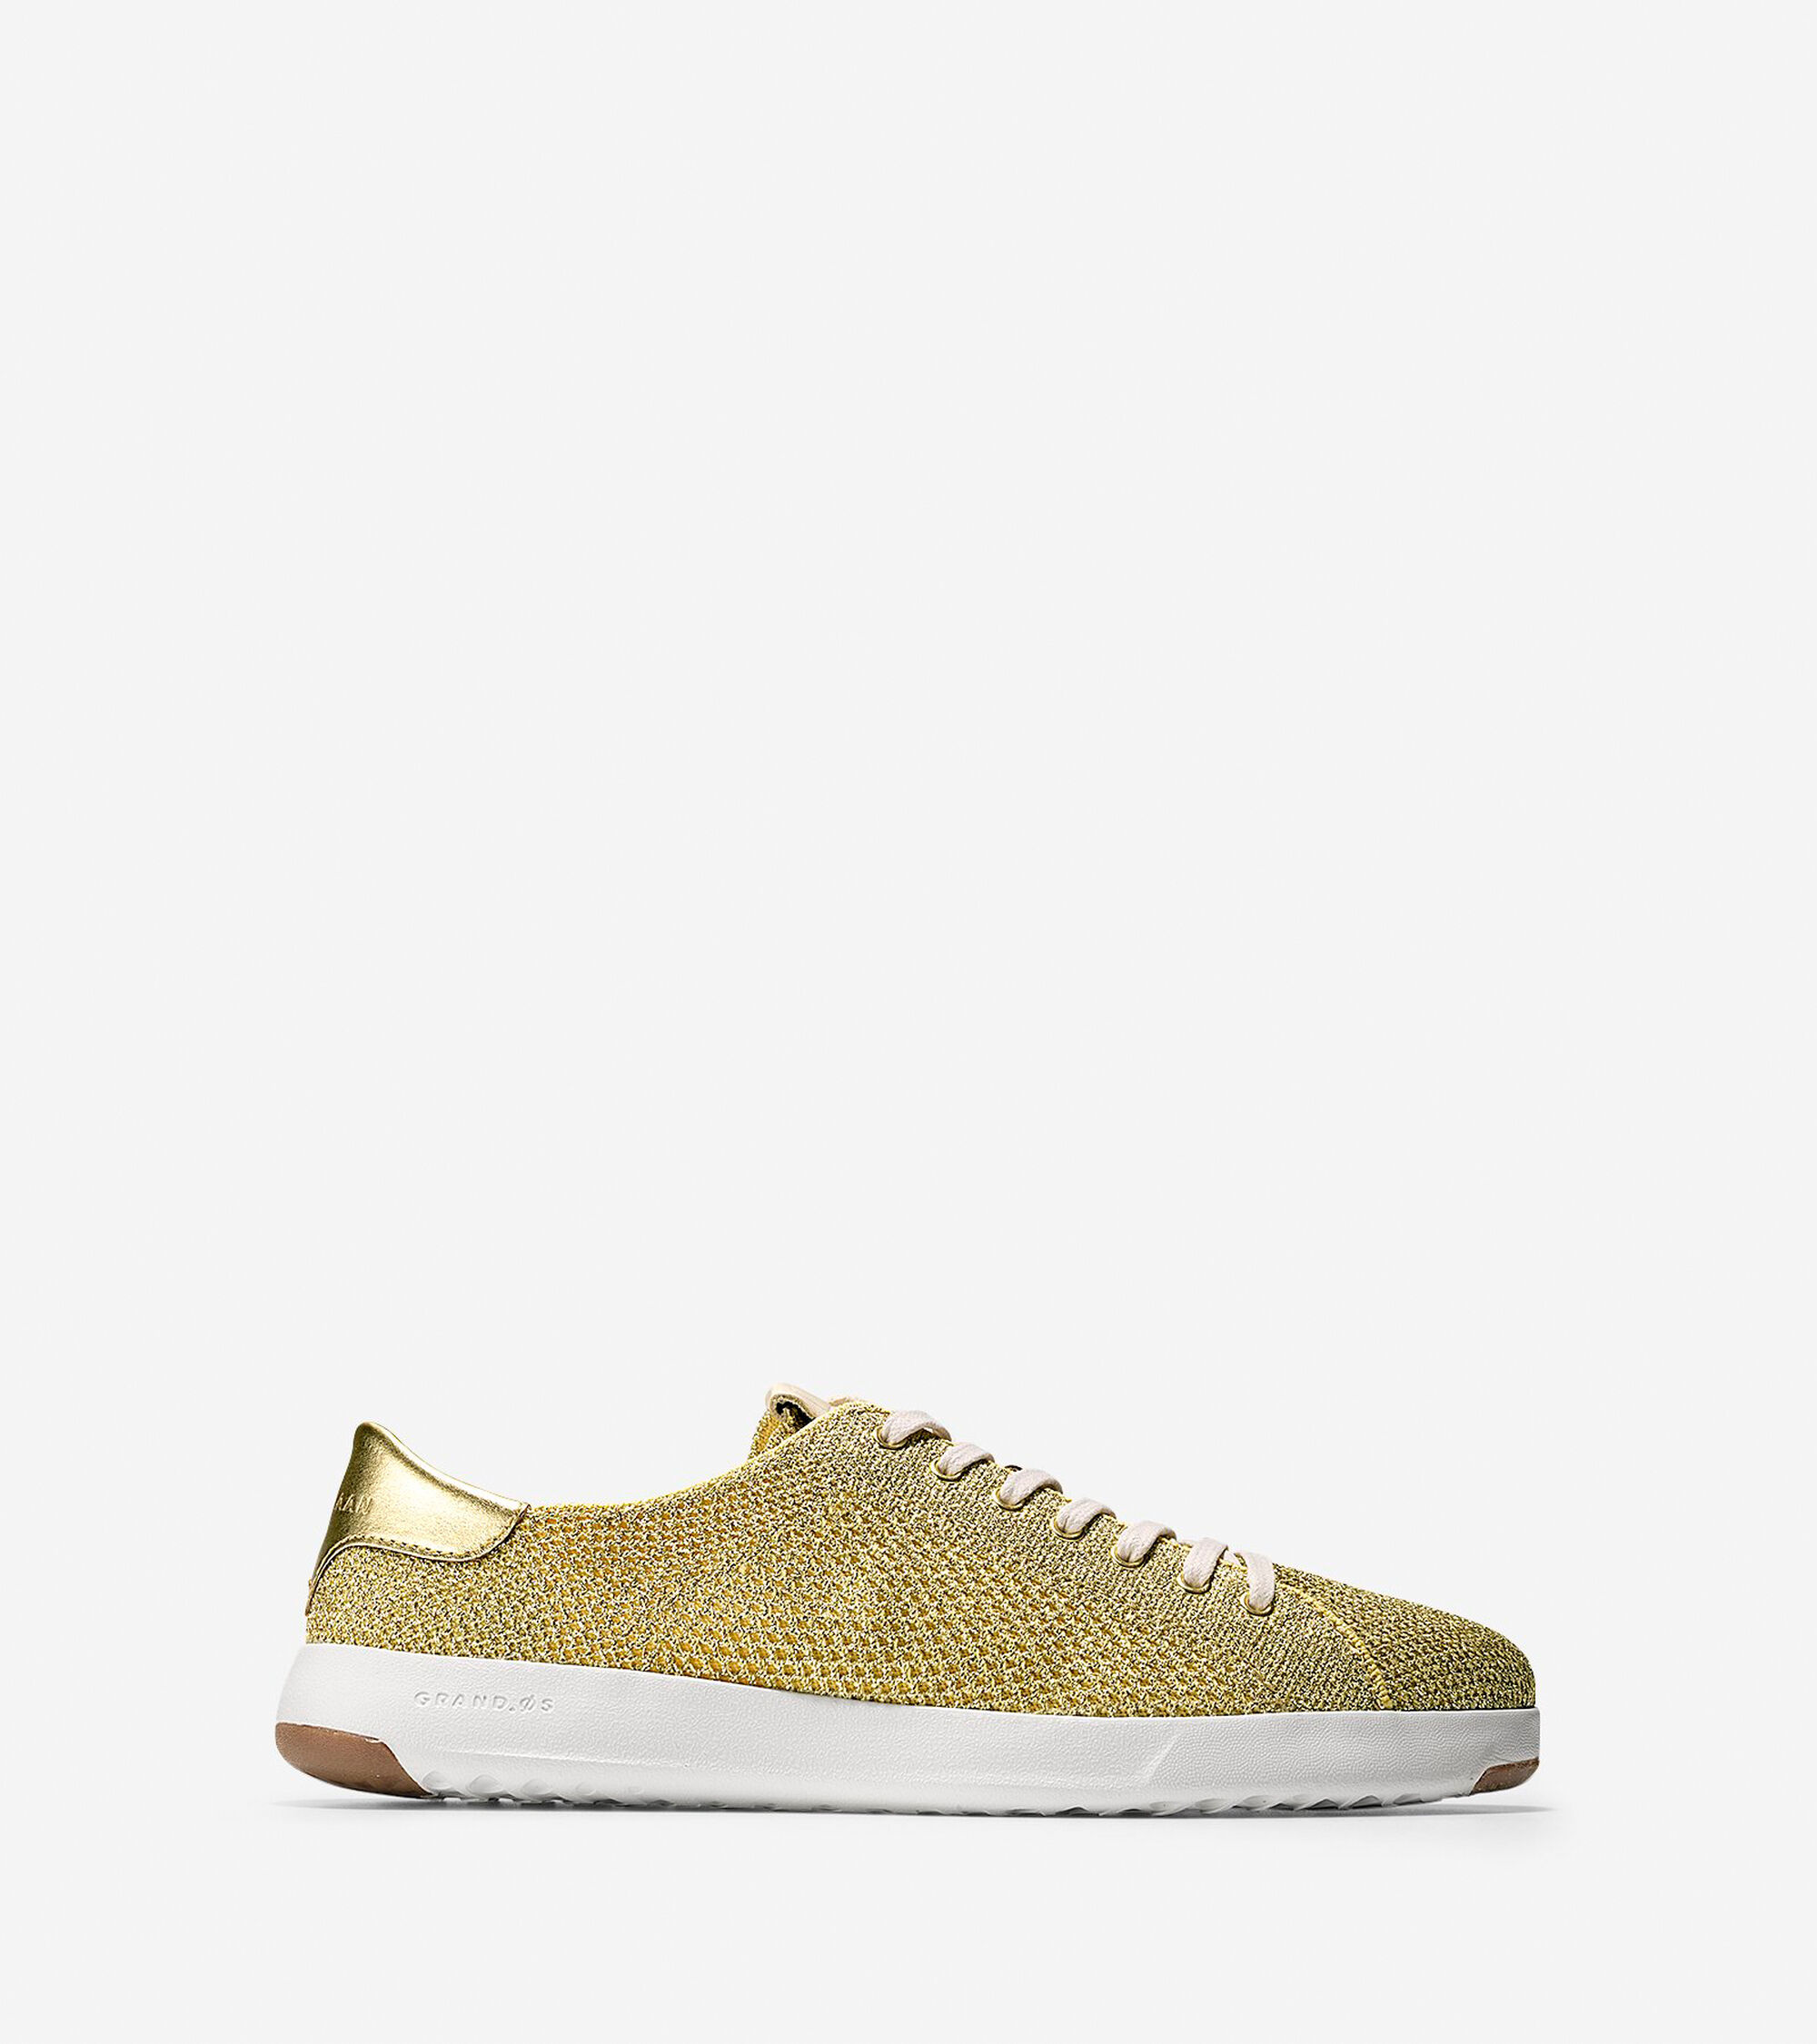 ed0a0619d2ee Women s GrandPro Stitchlite Tennis Sneakers in Metallic Gold